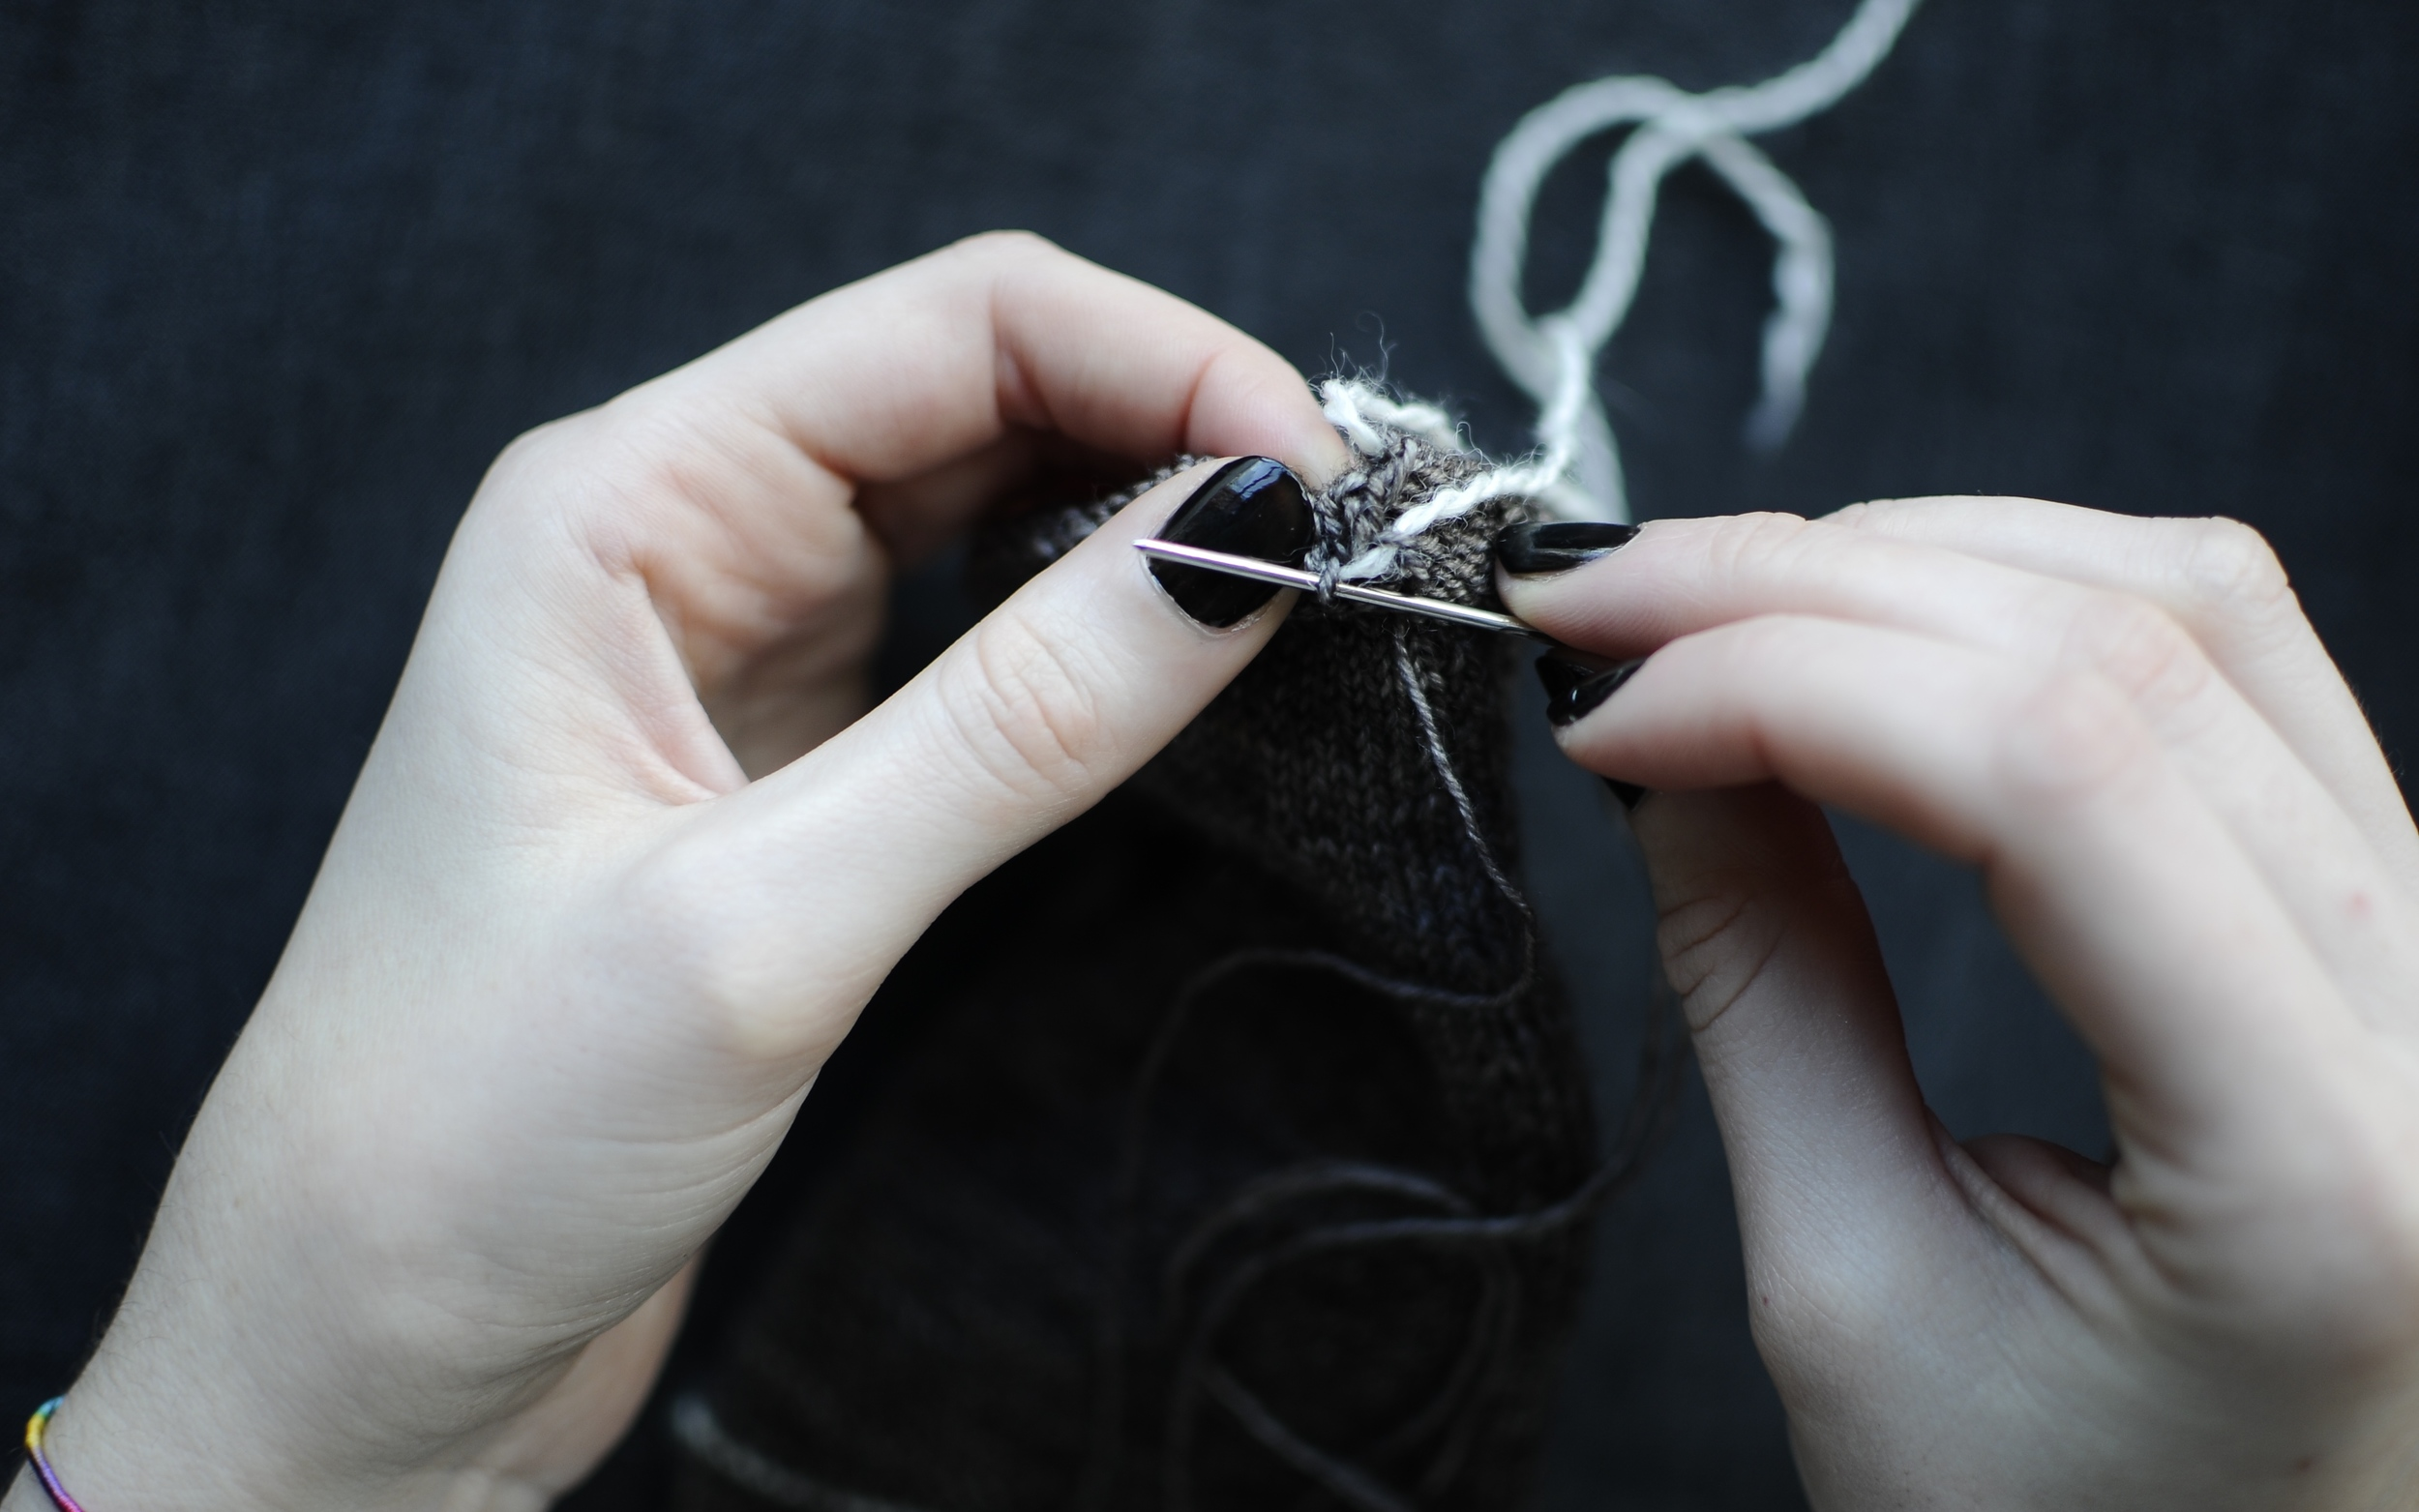 7. Insert the darning needle into the next live stitch, always as if to purl.